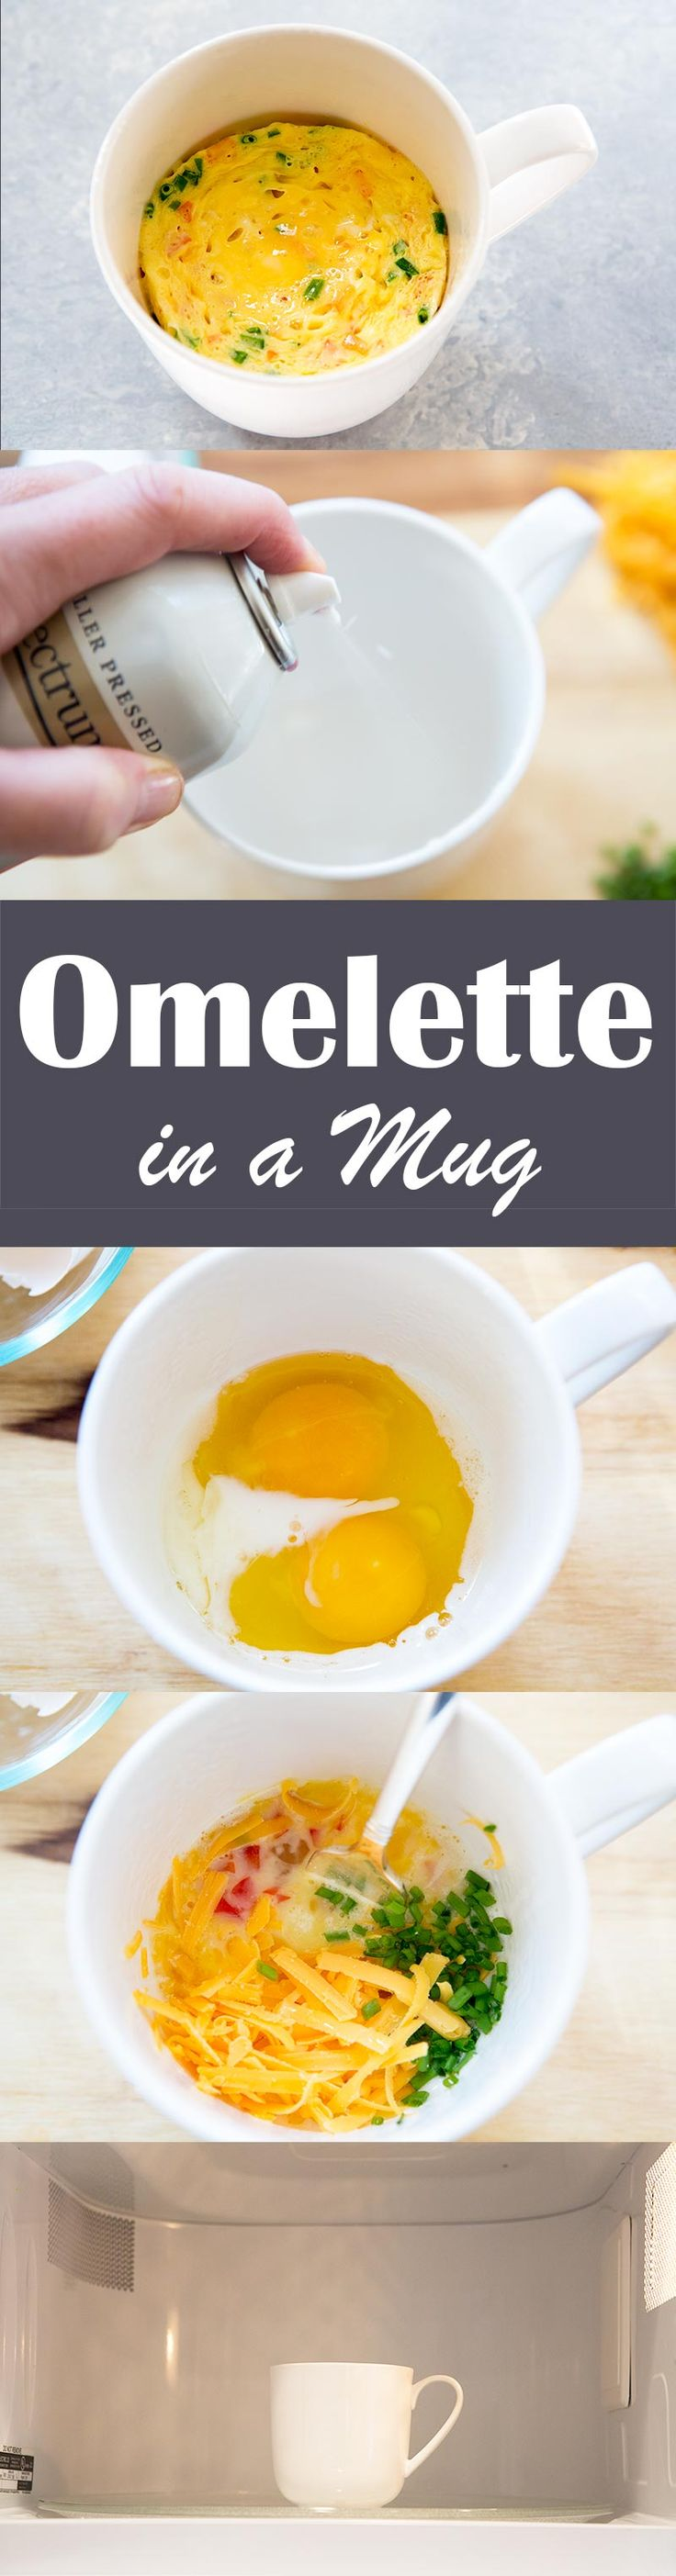 EASY 2 min Microwave Mug Omelette! 200 cal Perfect for a busy day, only have to clean one dish, and it tastes great! #lowcarb #healthy